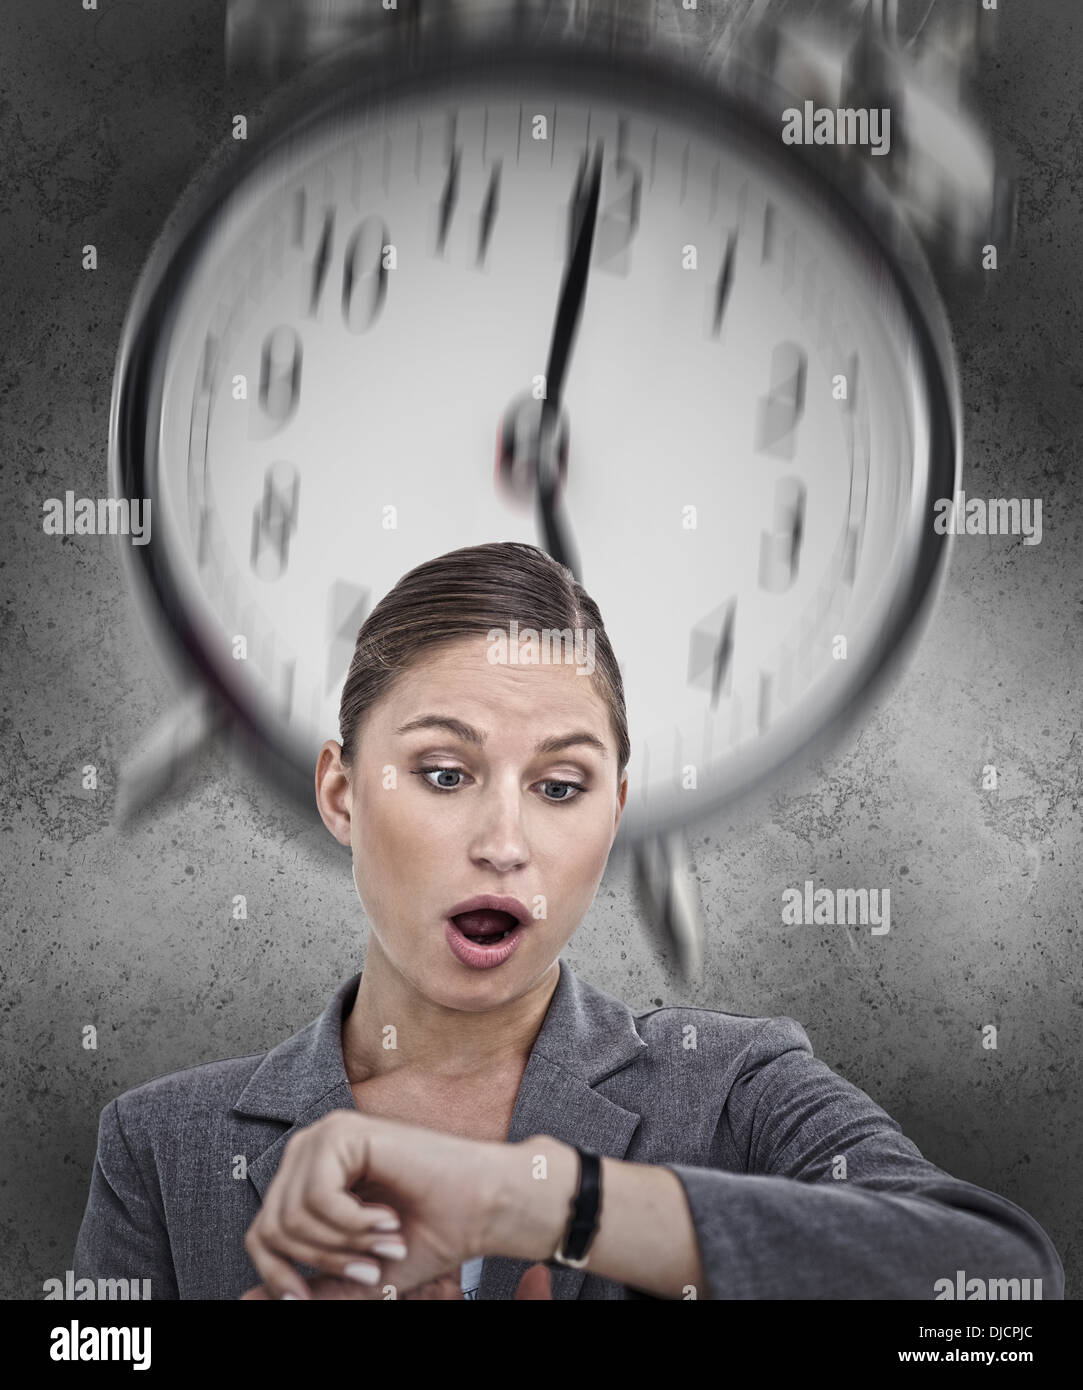 Businesswoman realising she is running out of time - Stock Image